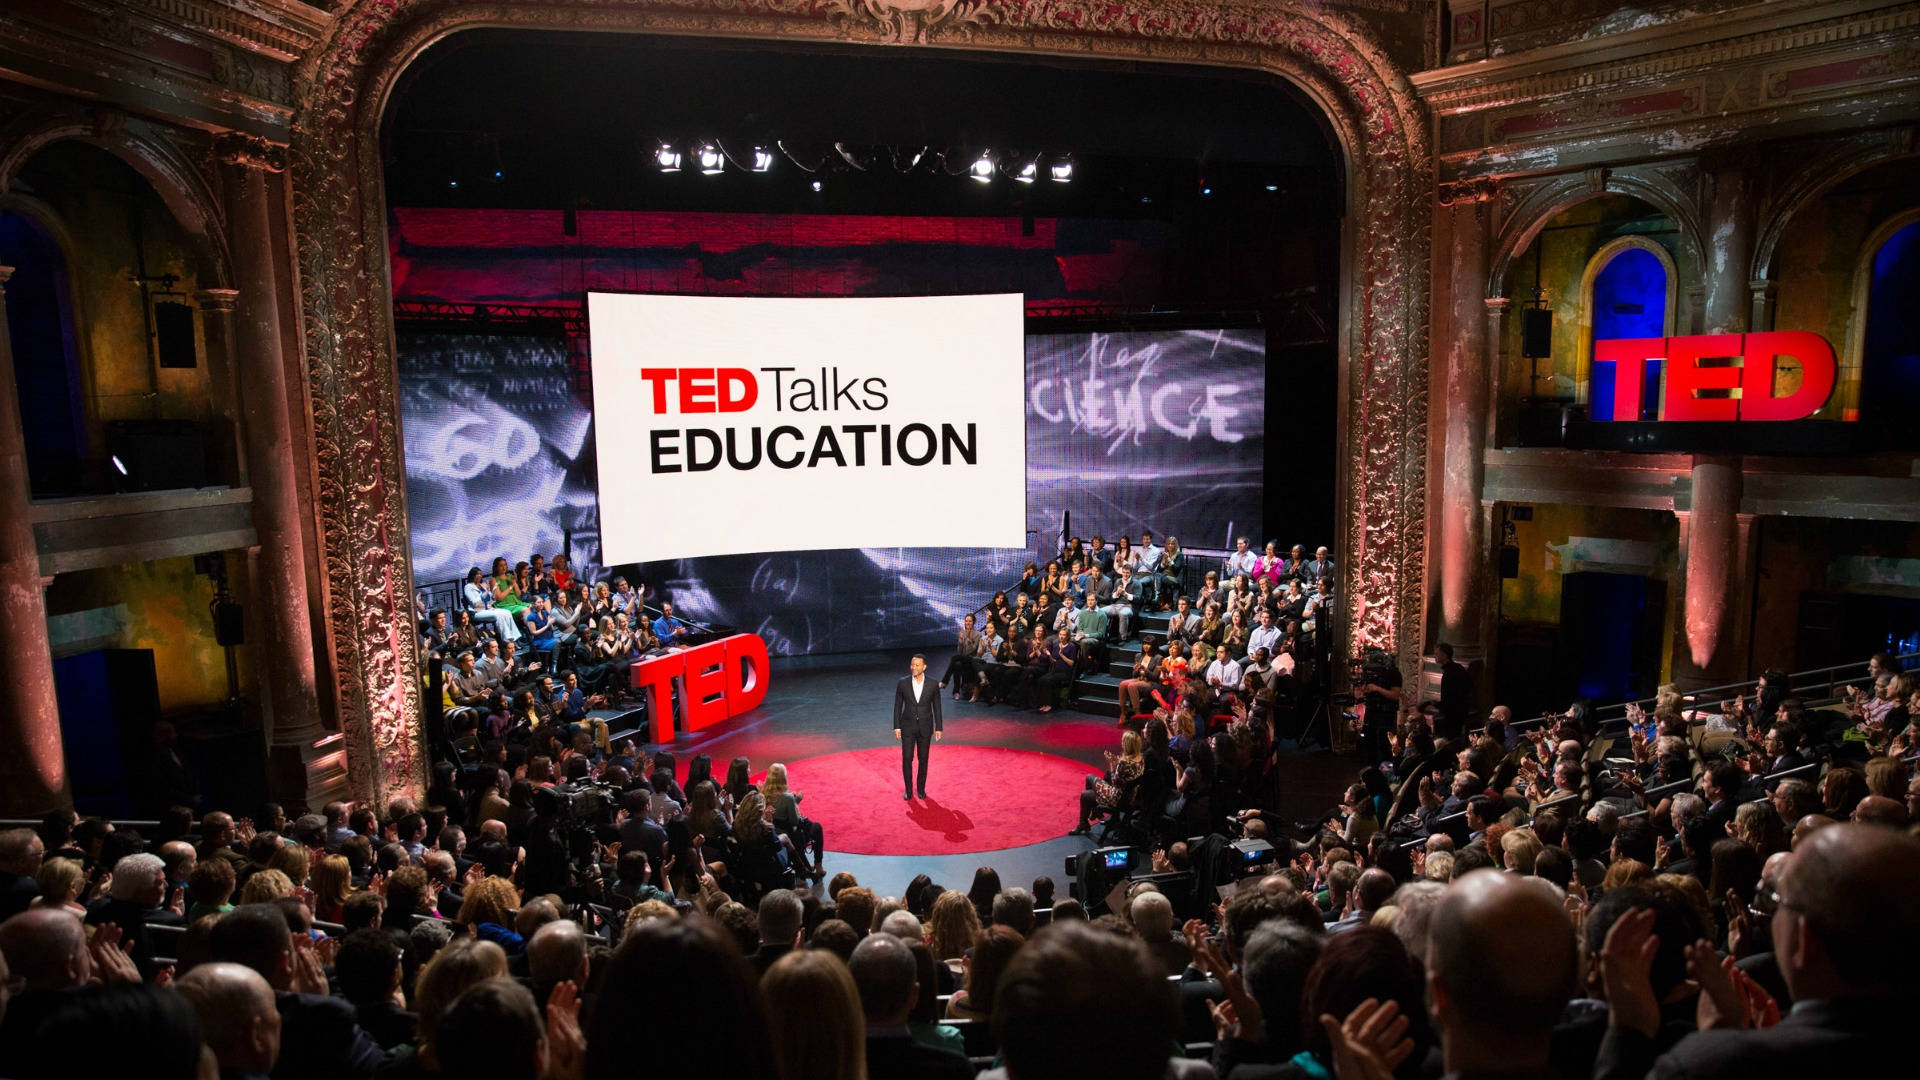 More than 800 educators at TED Talks Education, hosted by musician John Legend at BAM's Harvey Theater in NYC